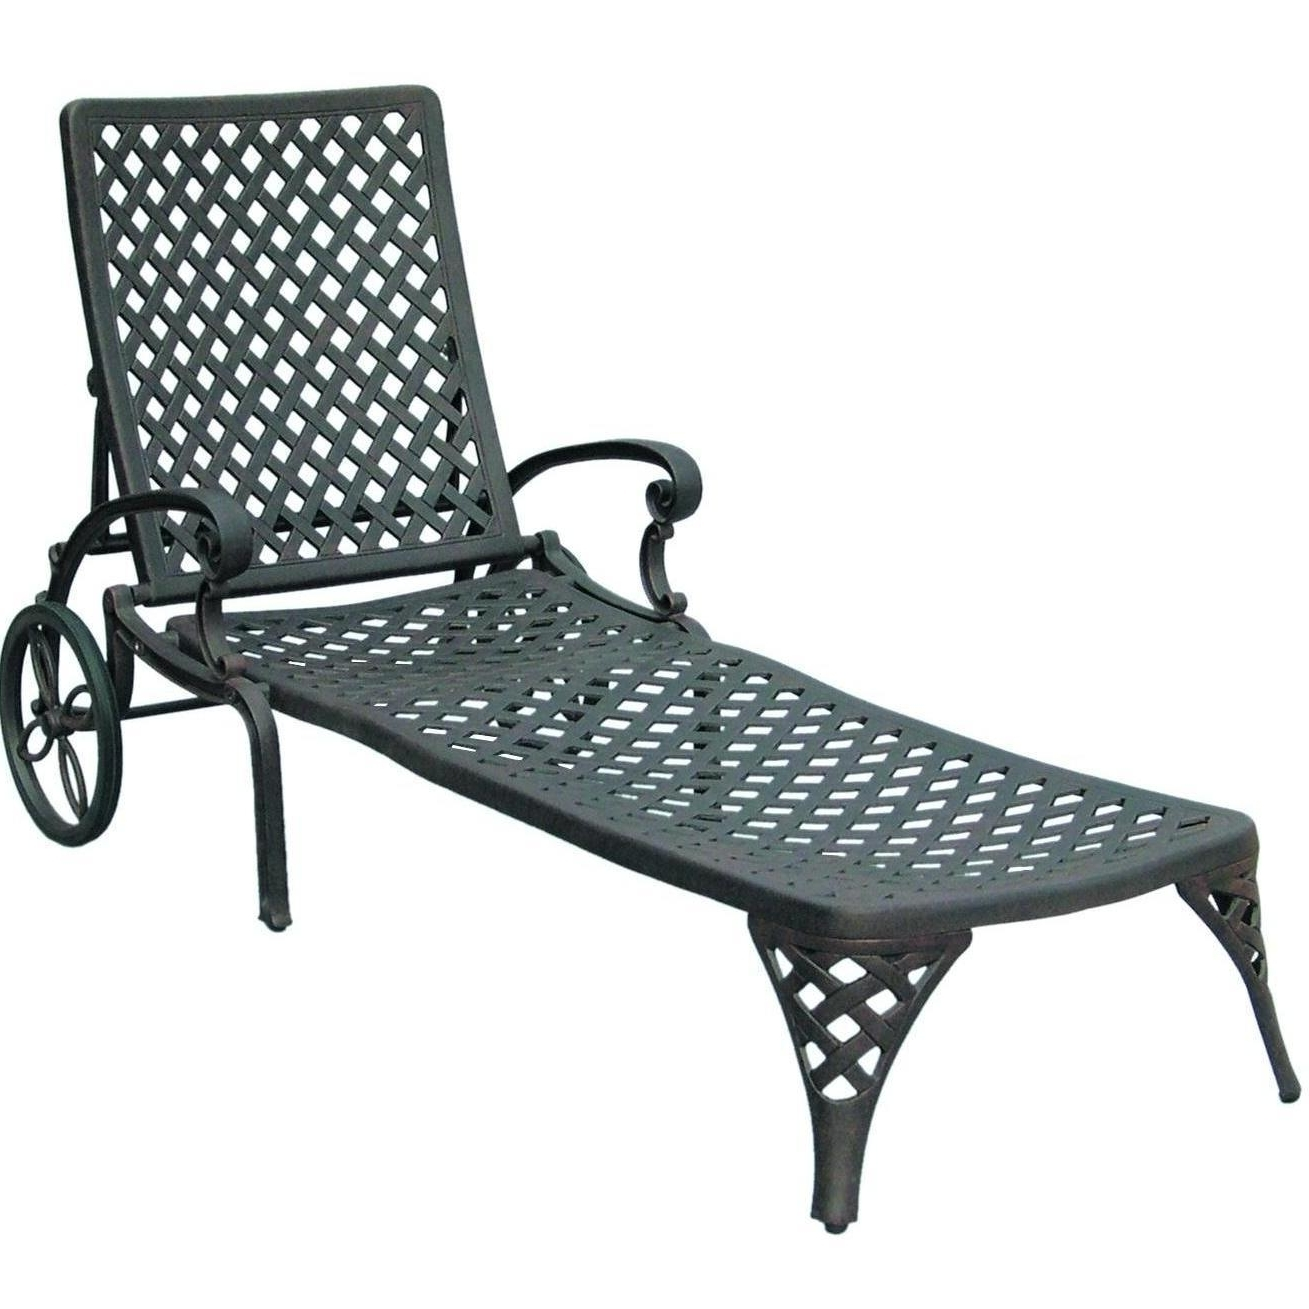 Darlee Nassau Cast Aluminum Patio Chaise Lounge : Ultimate Patio For Most Recent Wrought Iron Chaise Lounge Chairs (View 3 of 15)